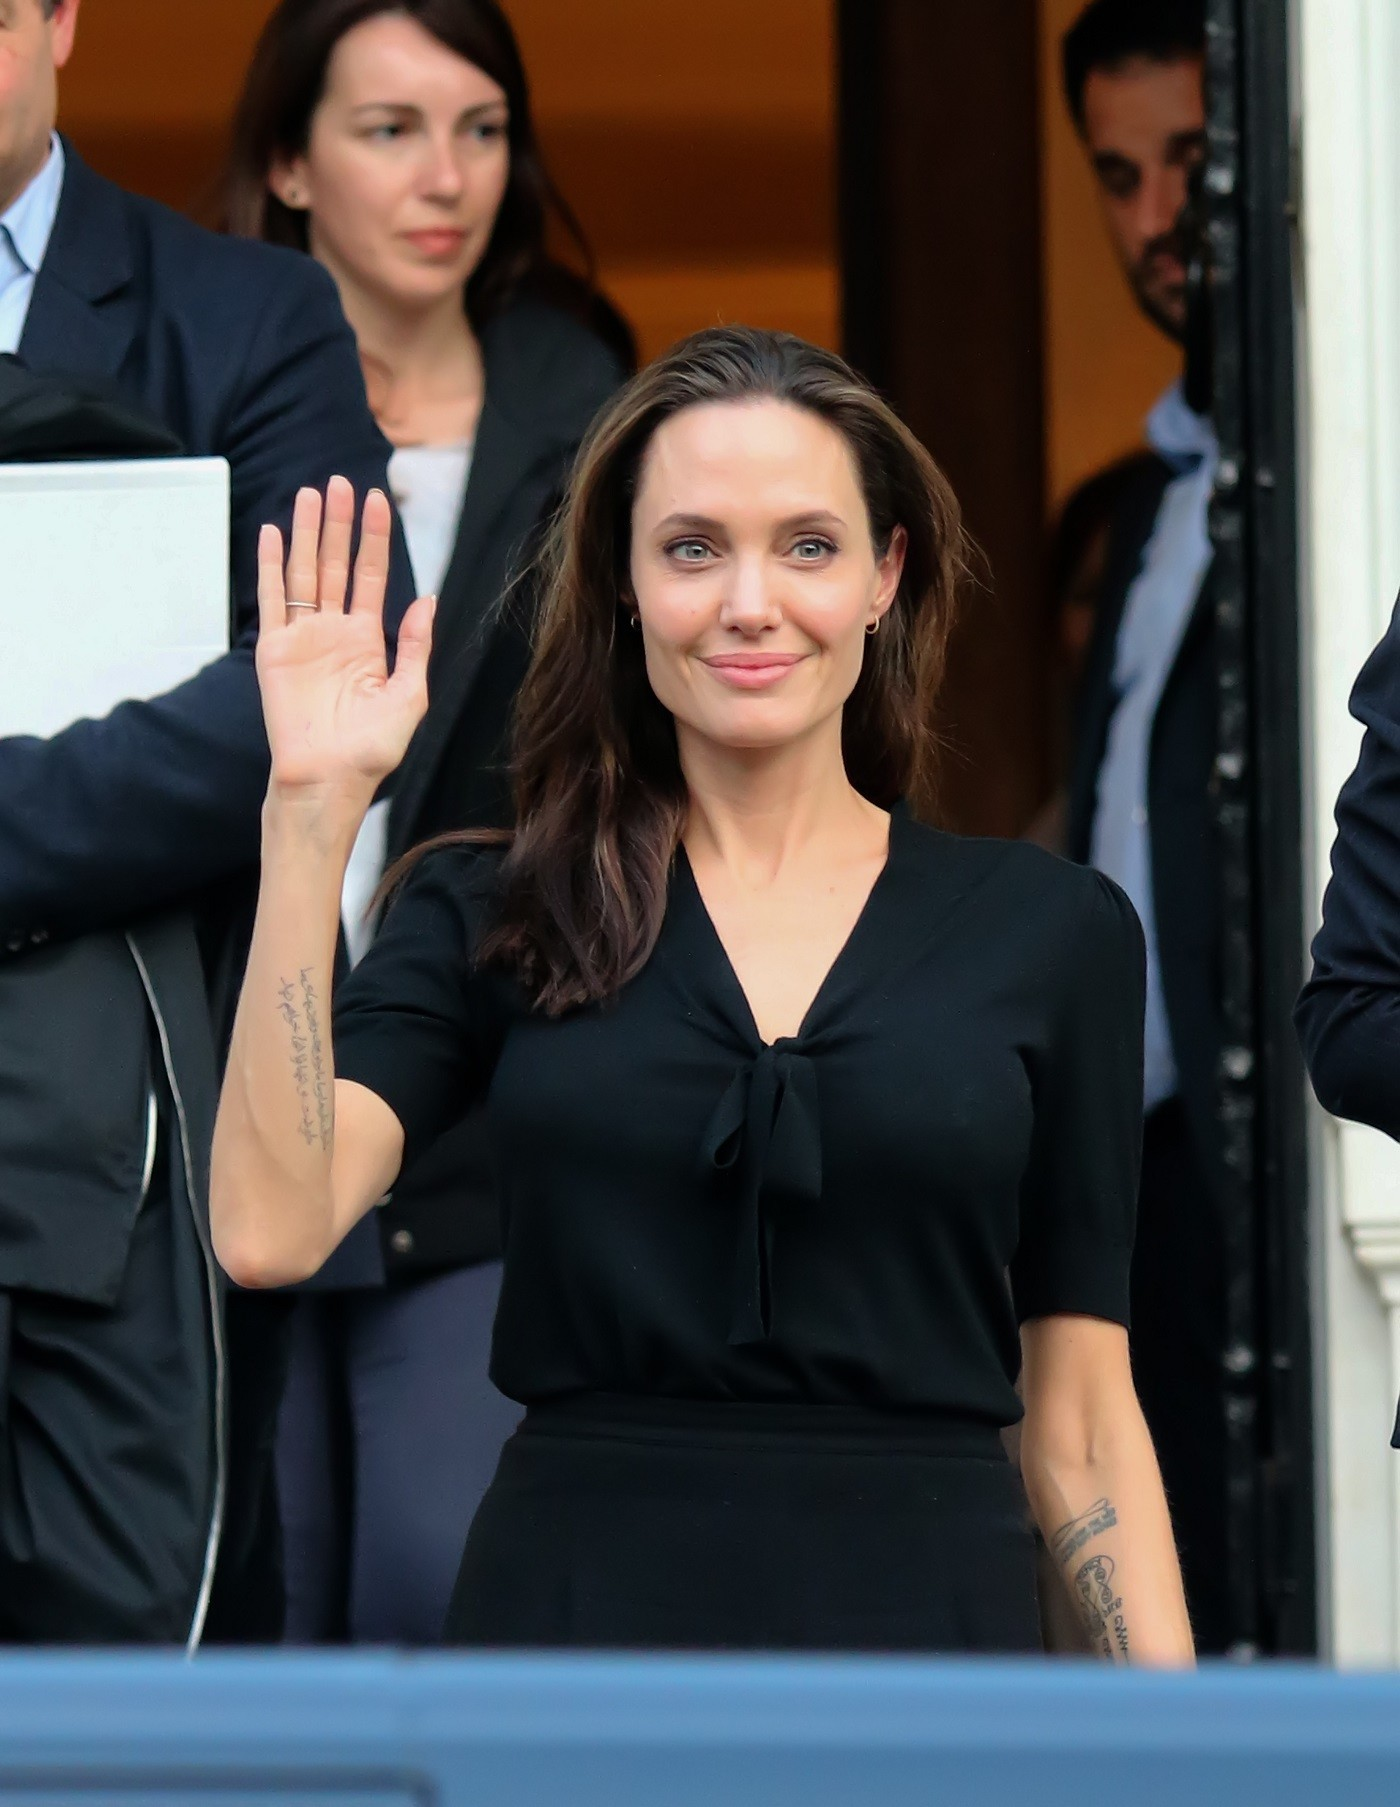 Angelina Jolie Photos Hot angelina jolie's hot dog run to target ends in